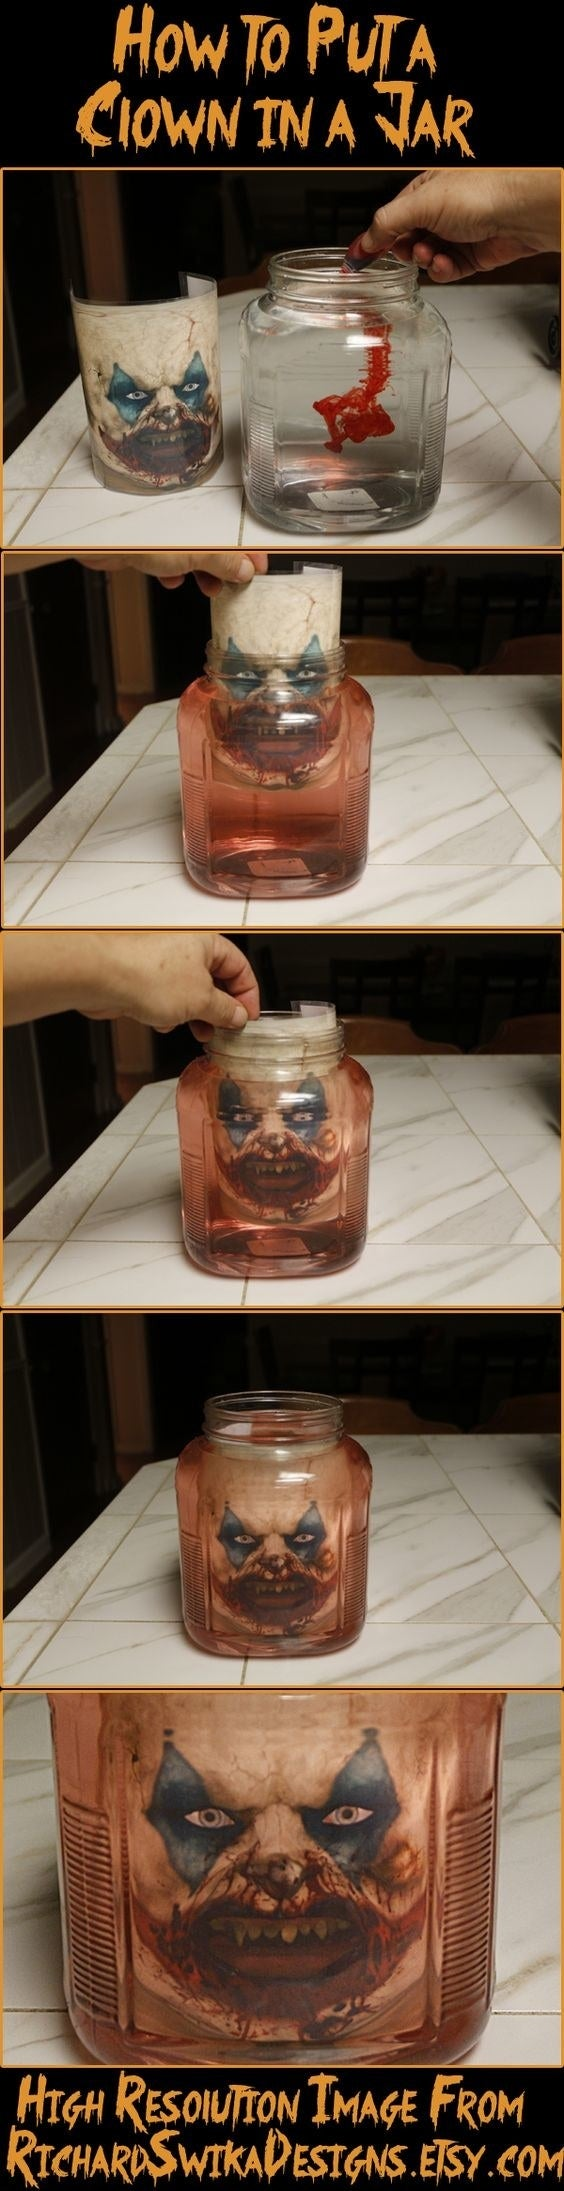 23 heart-stopping pranks you need to pull this halloween